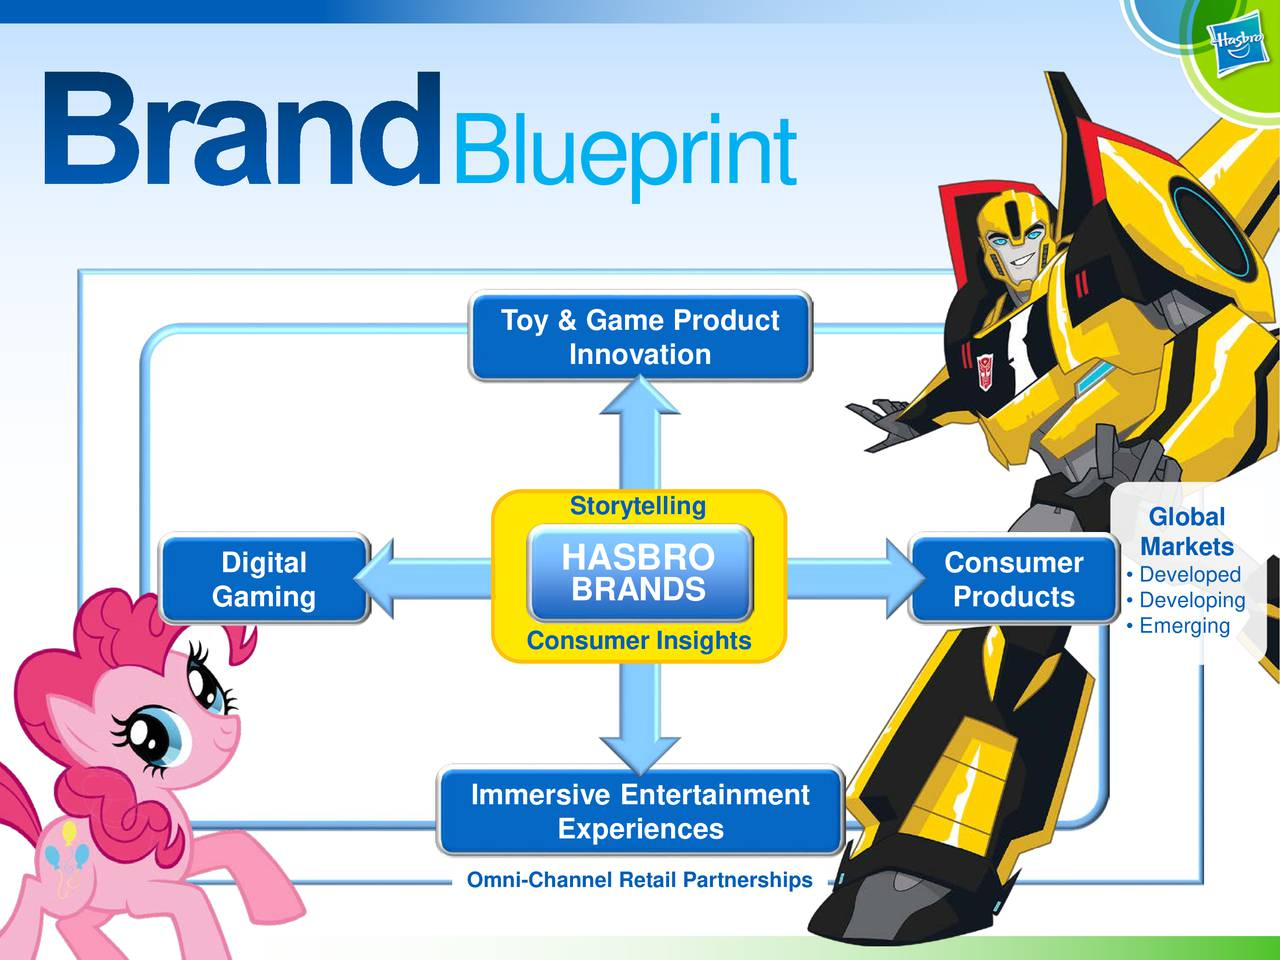 Toy & Game Product Innovation Storytelling Markets Digital HASBRO Consumer  Developed Gaming BRANDS Products  Developing Emerging Consumer Insights Immersive Entertainment Experiences Omni-Channel Retail Partnerships